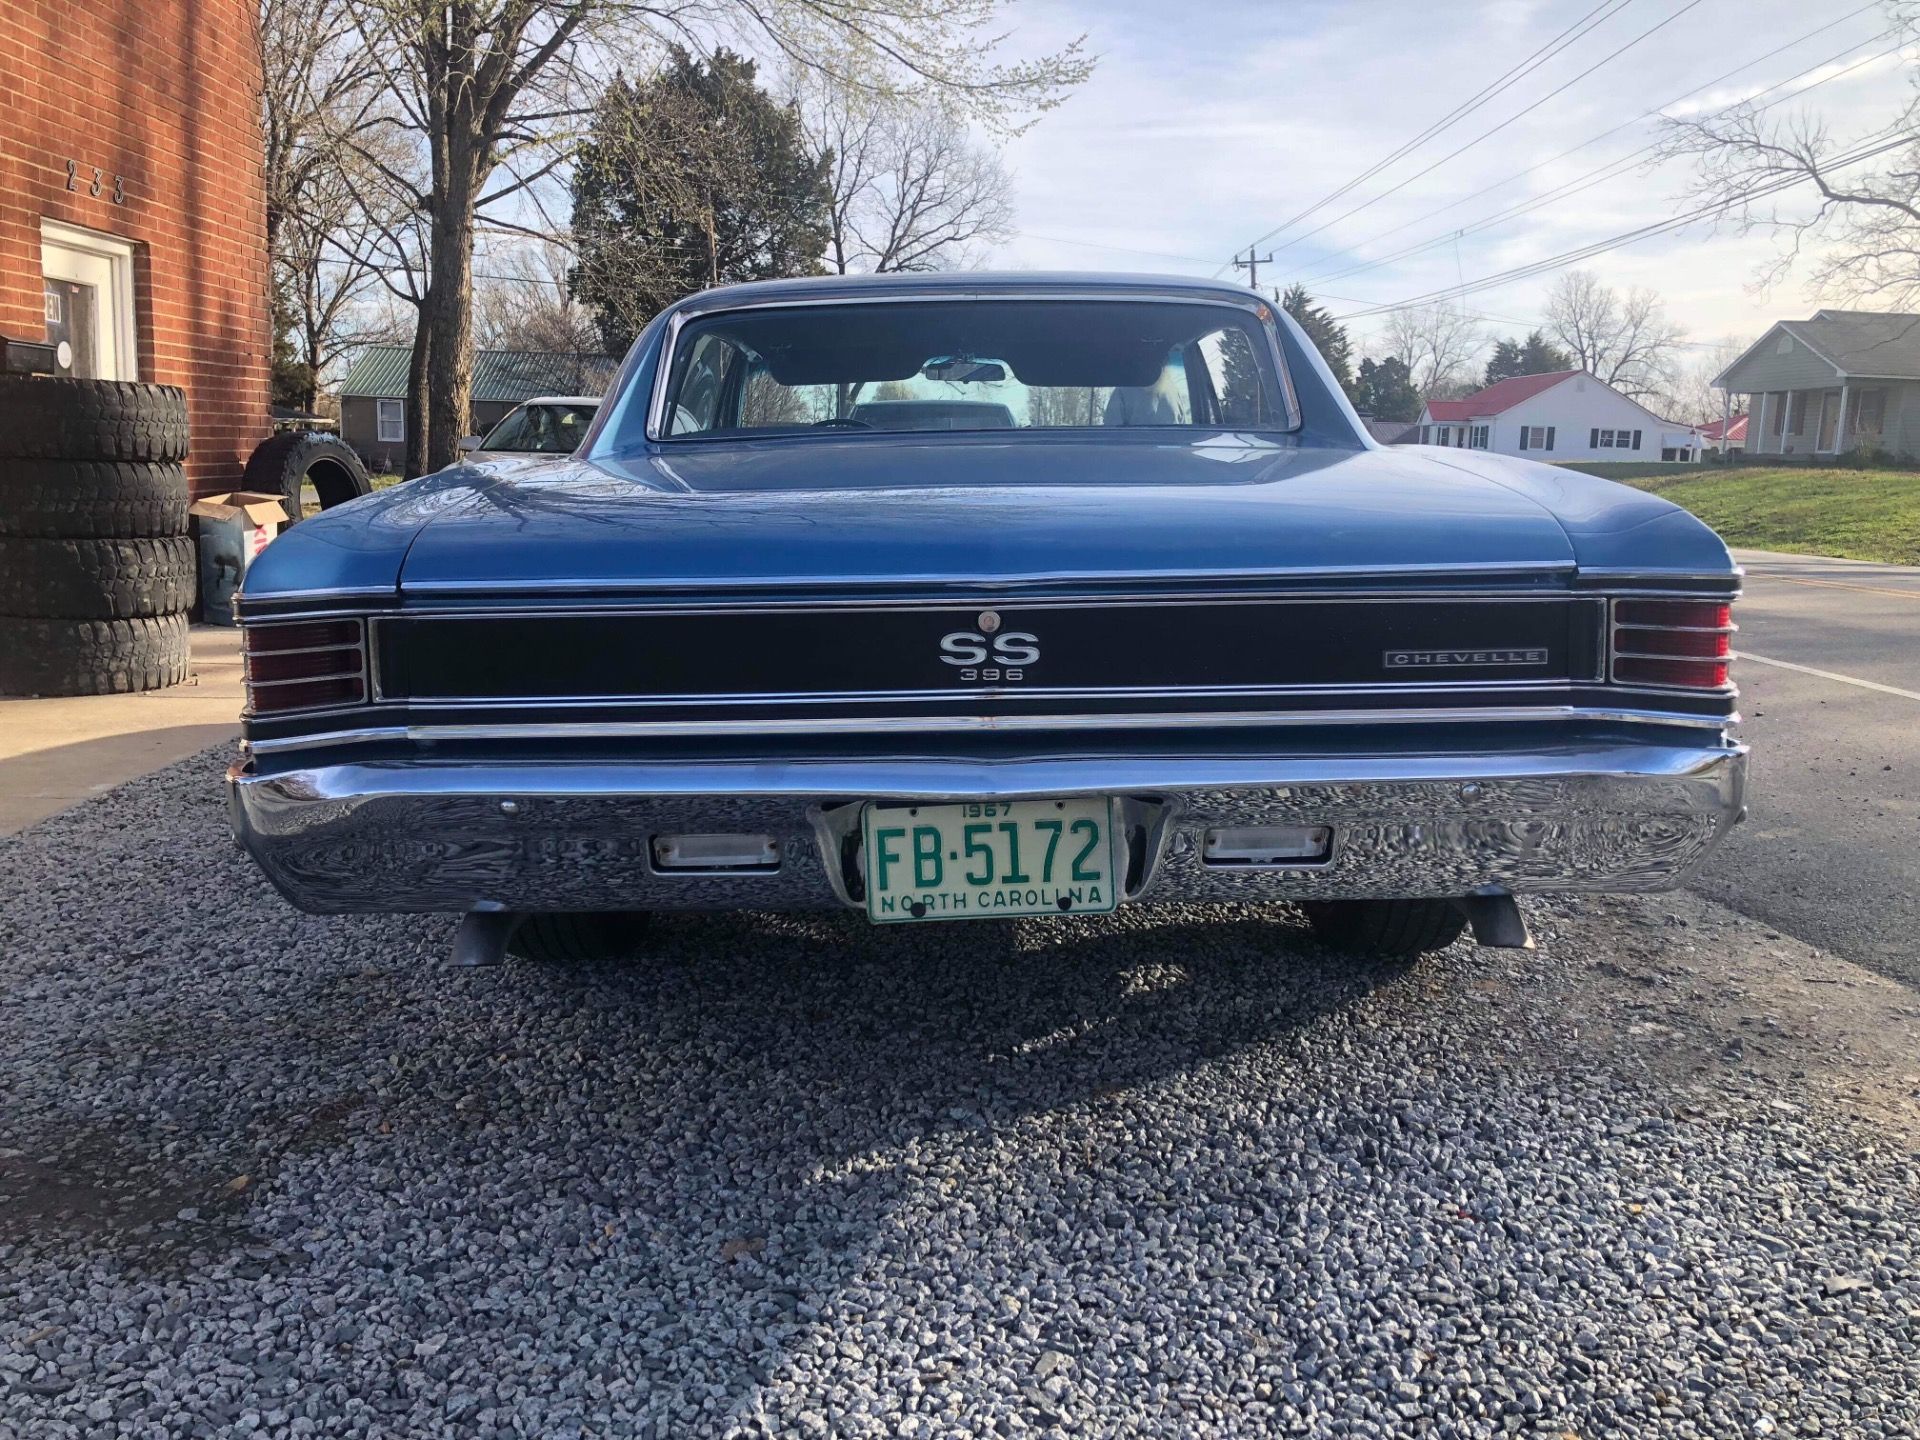 Used 1967 Chevrolet Chevelle -Small Block-Automatic-Reliable affordable Muscle Car- | Mundelein, IL